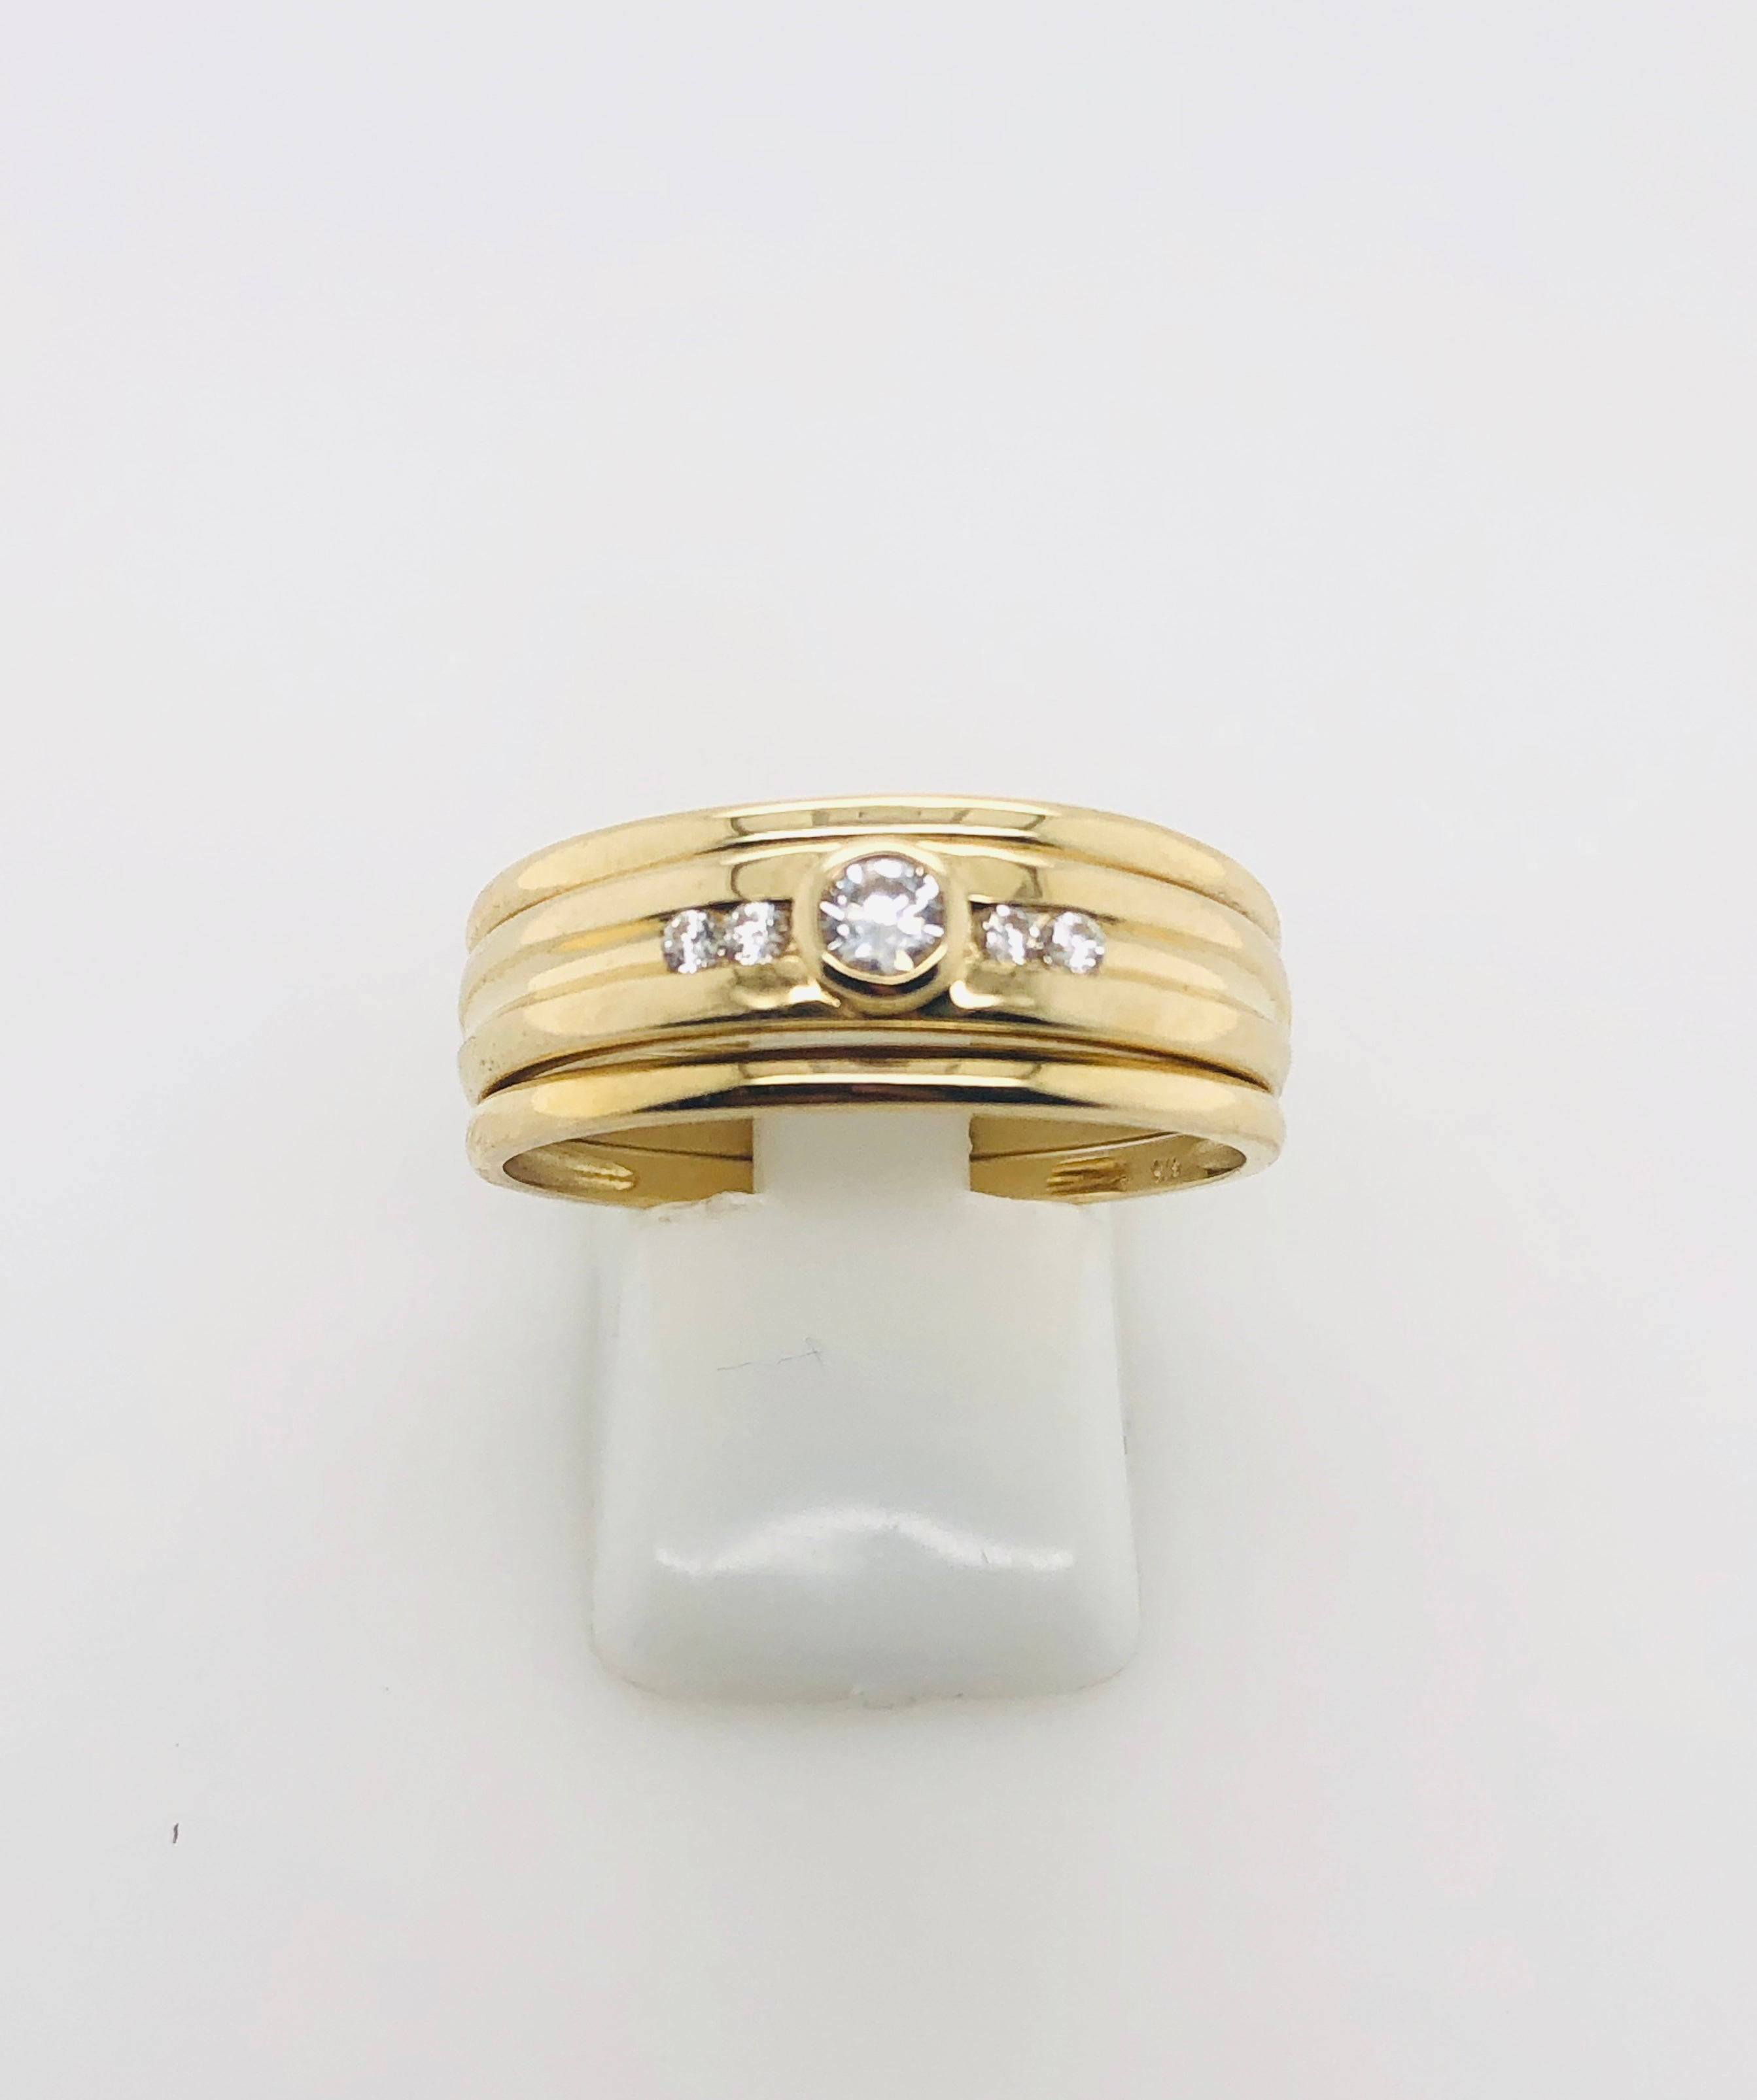 9ct Gold 3 Piece Set Ring With Cubic Zirconia